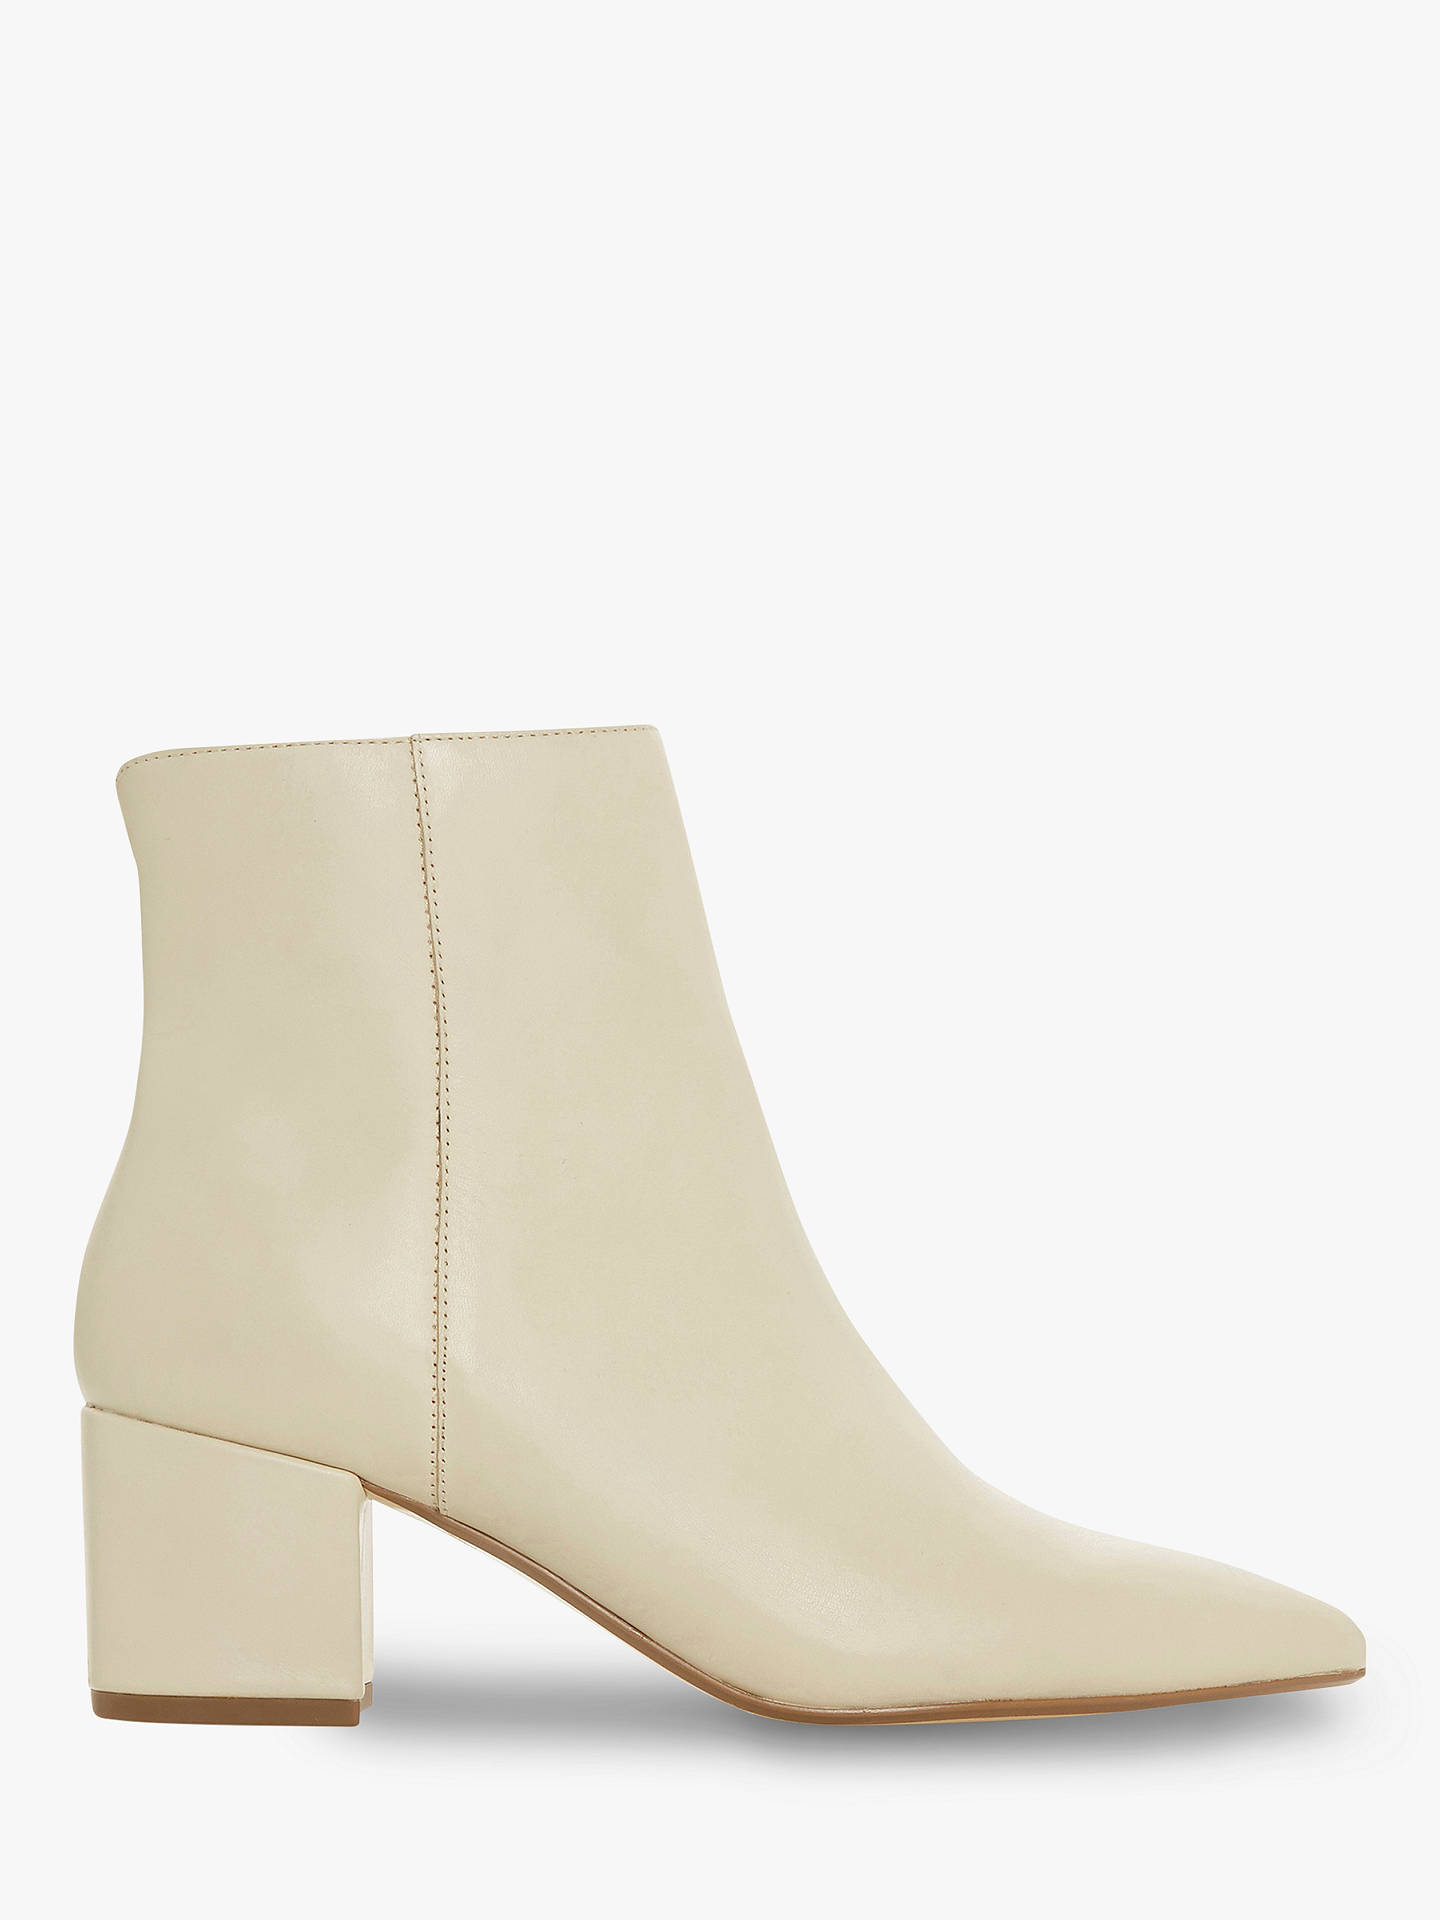 ed211b10694c Buy Dune Omarii Block Heel Ankle Boots, Cream Leather, 6 Online at  johnlewis.